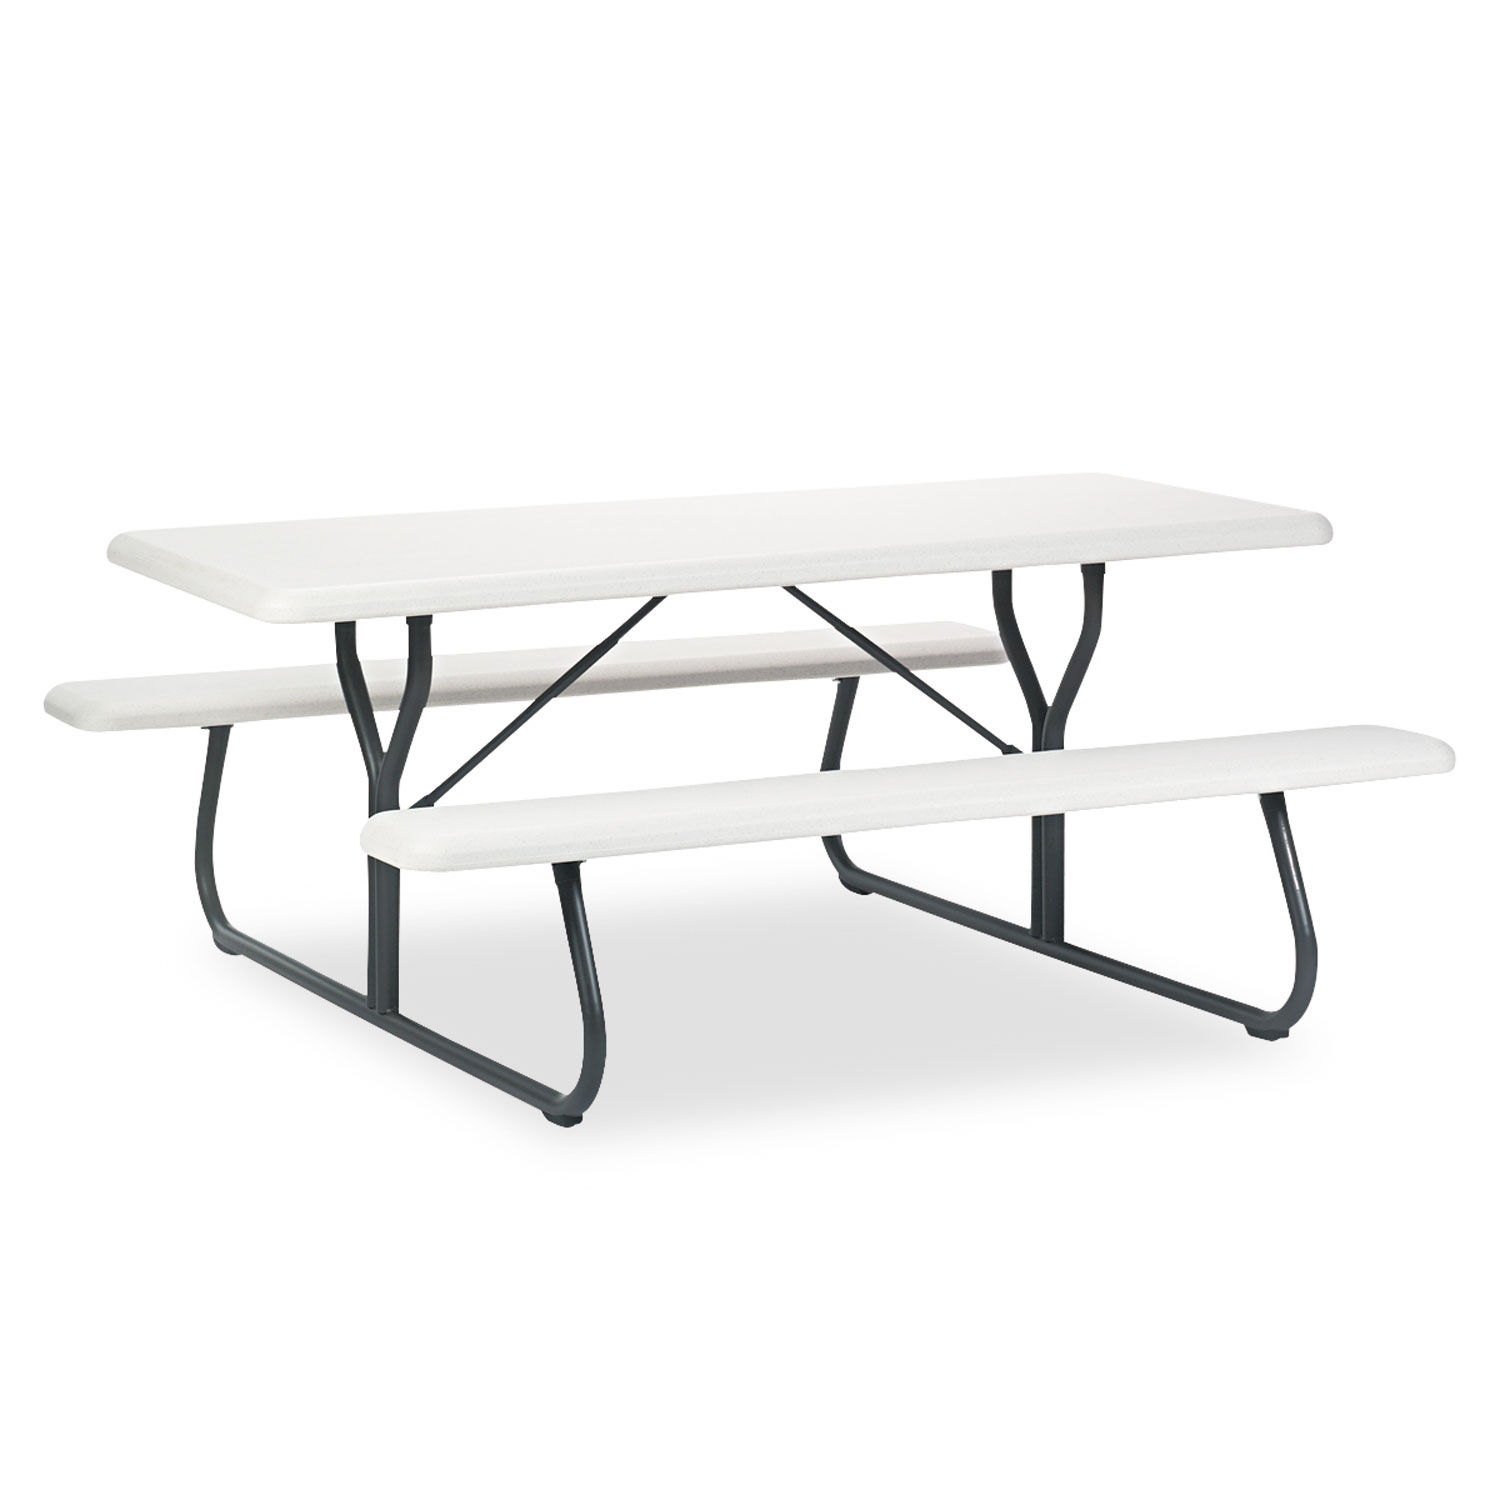 Superb Indestructables Too 1200 Series Resin Picnic Table 72W X 30D Platinum Gray Onthecornerstone Fun Painted Chair Ideas Images Onthecornerstoneorg